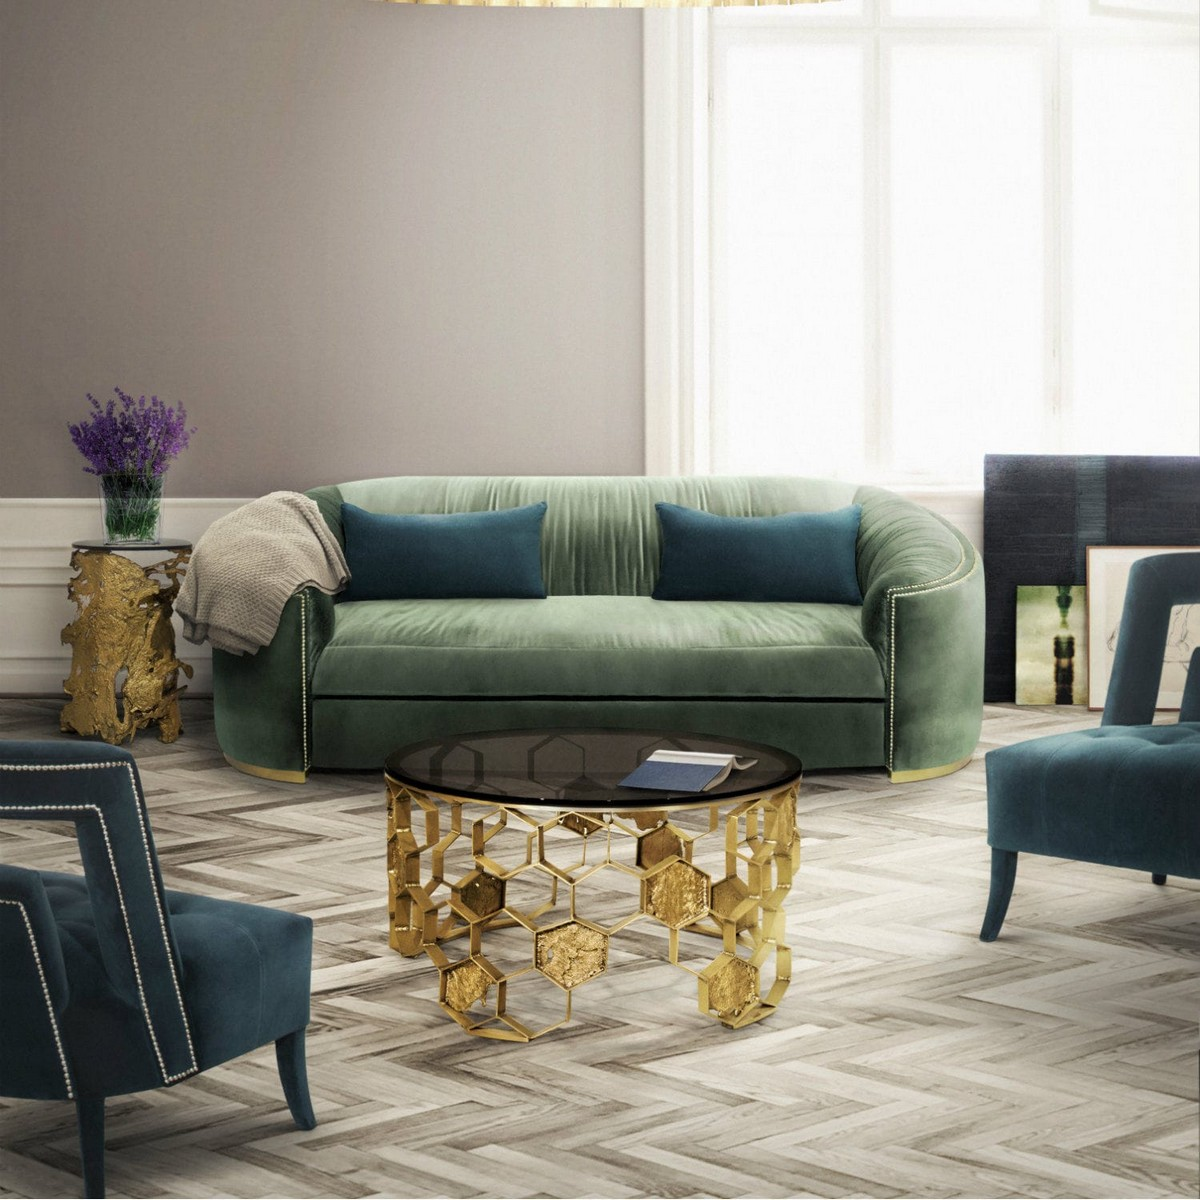 maison et objet 2019 Find The Best Living Room Designs At Maison et Objet 2019 wales2